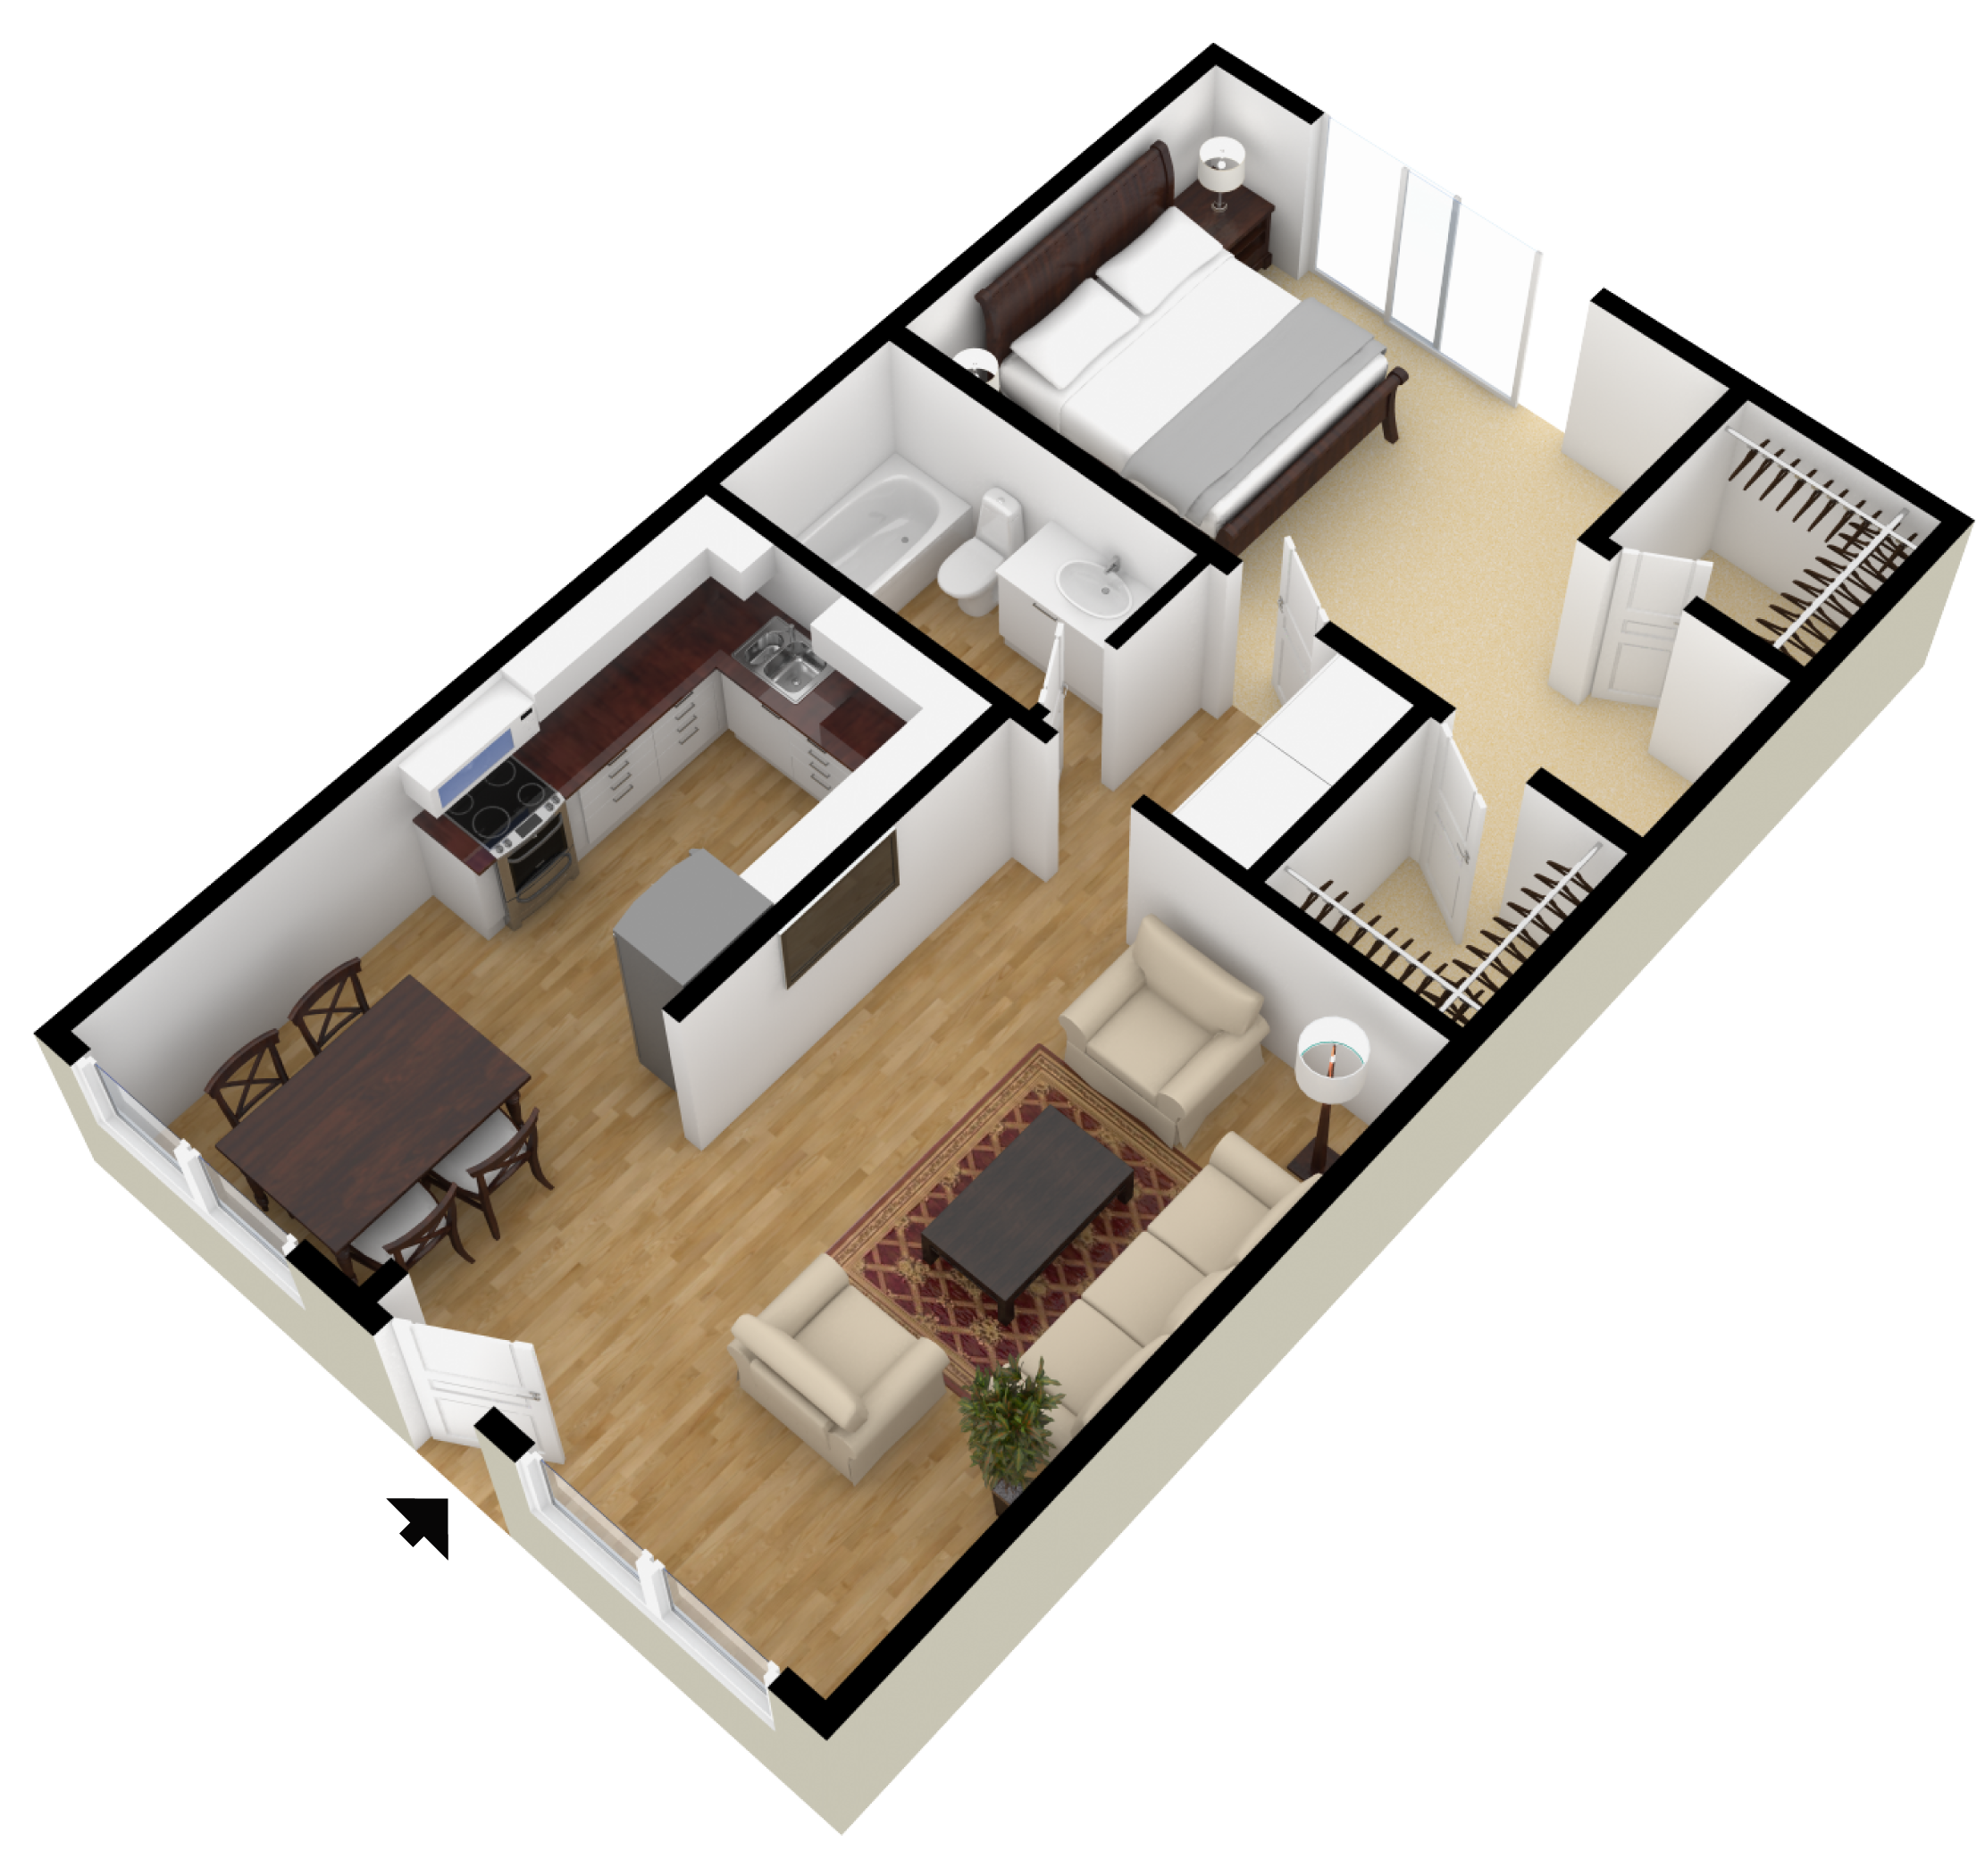 Studio 1 2 bedroom floor plans city plaza apartments - Floor plan for one bedroom ...